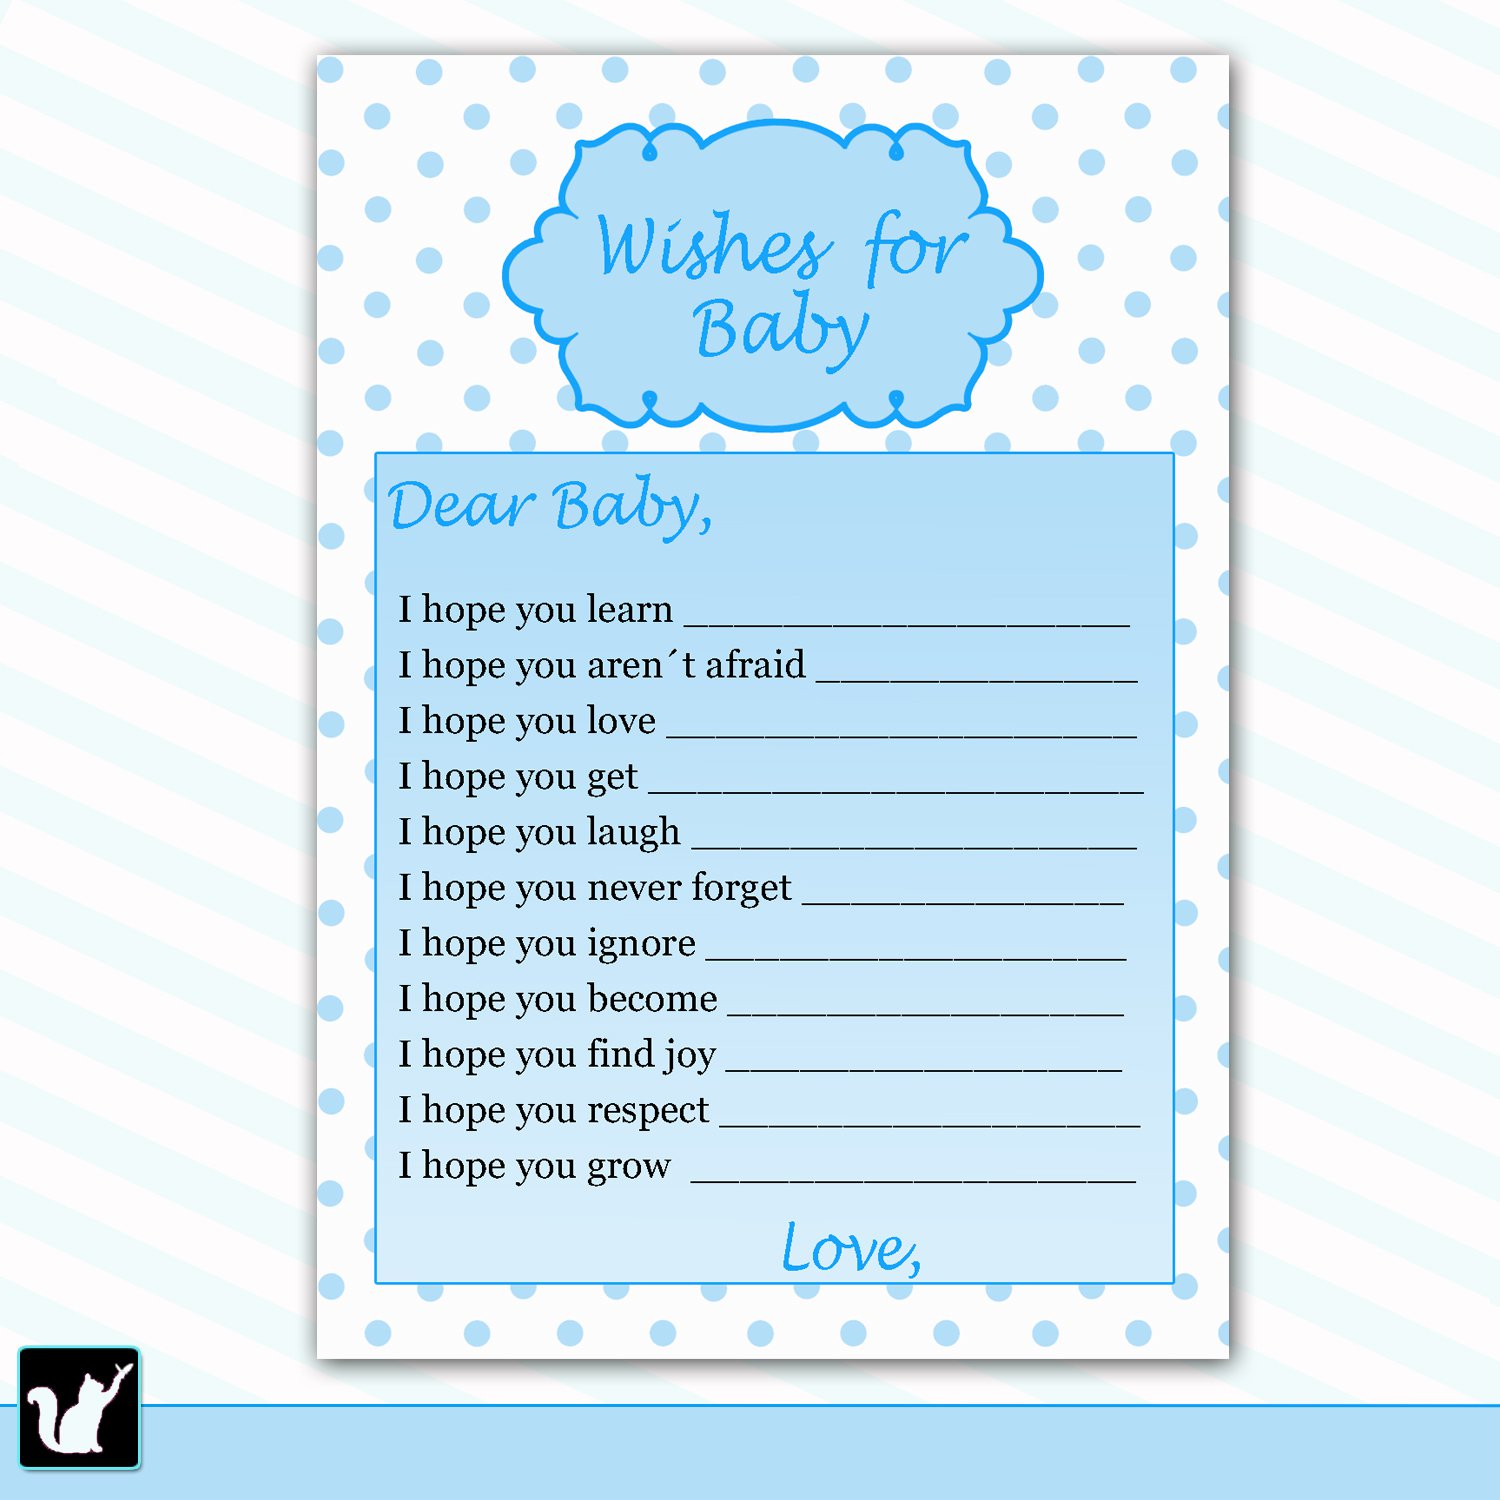 Games For A Baby Shower For A Boy: Printable Polka Dots Wishes For Baby Card